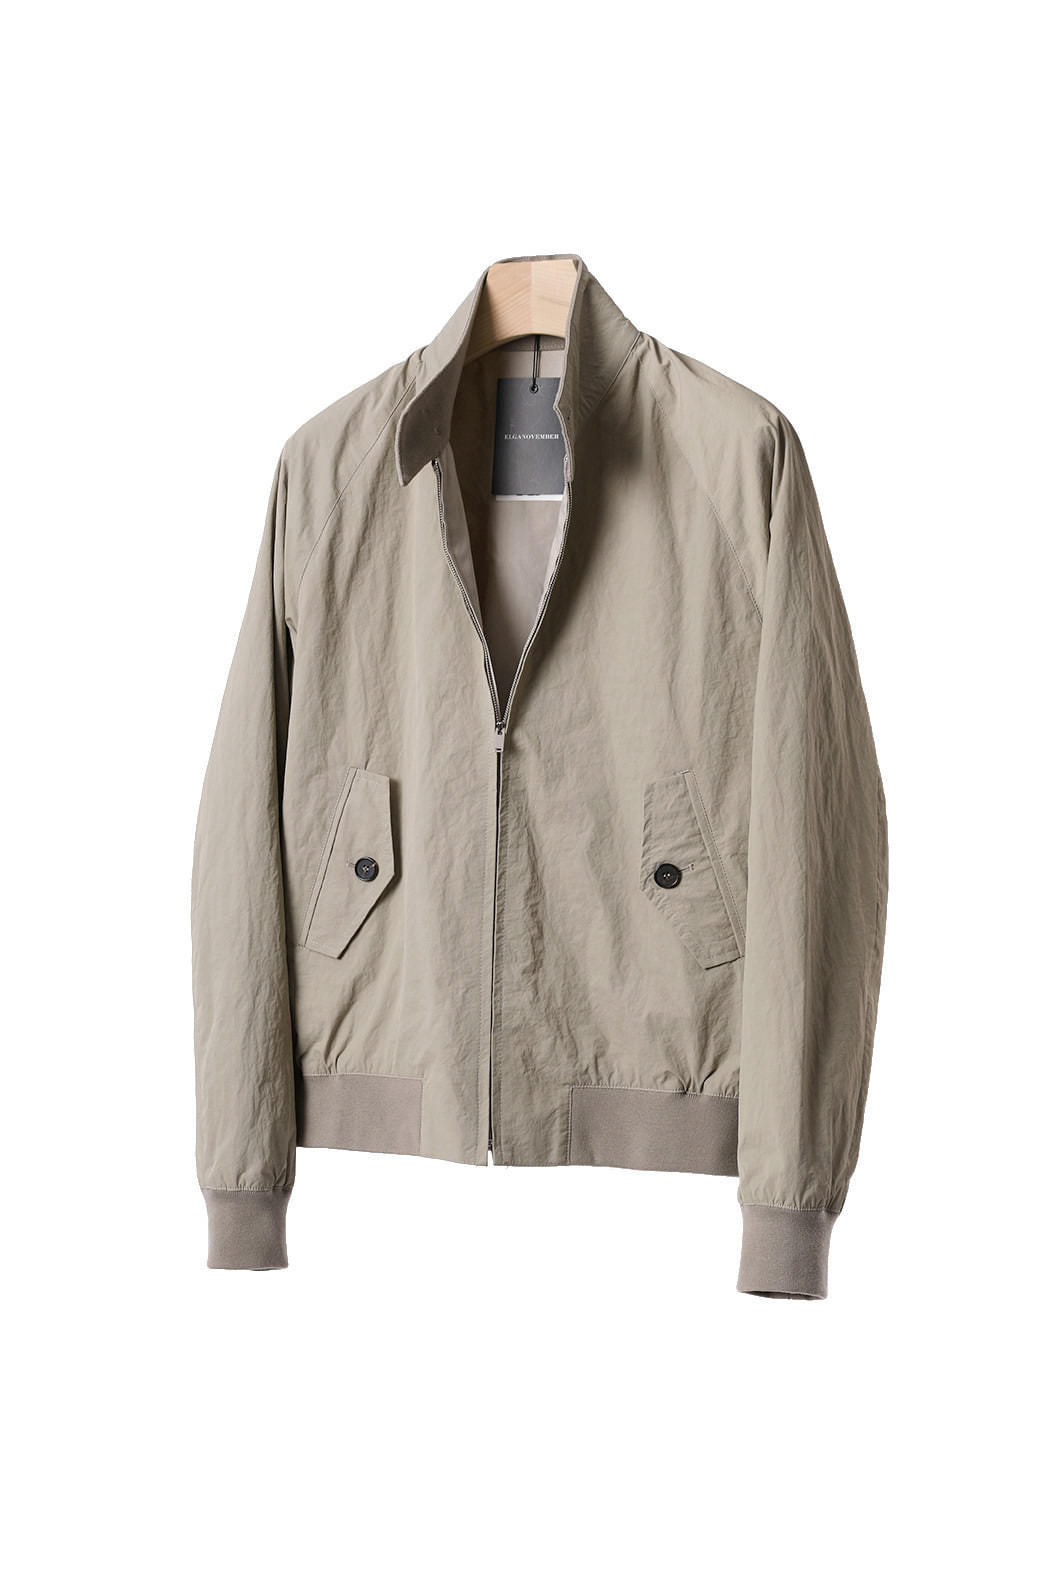 KOVATS POCKET JACKET-3COLOR